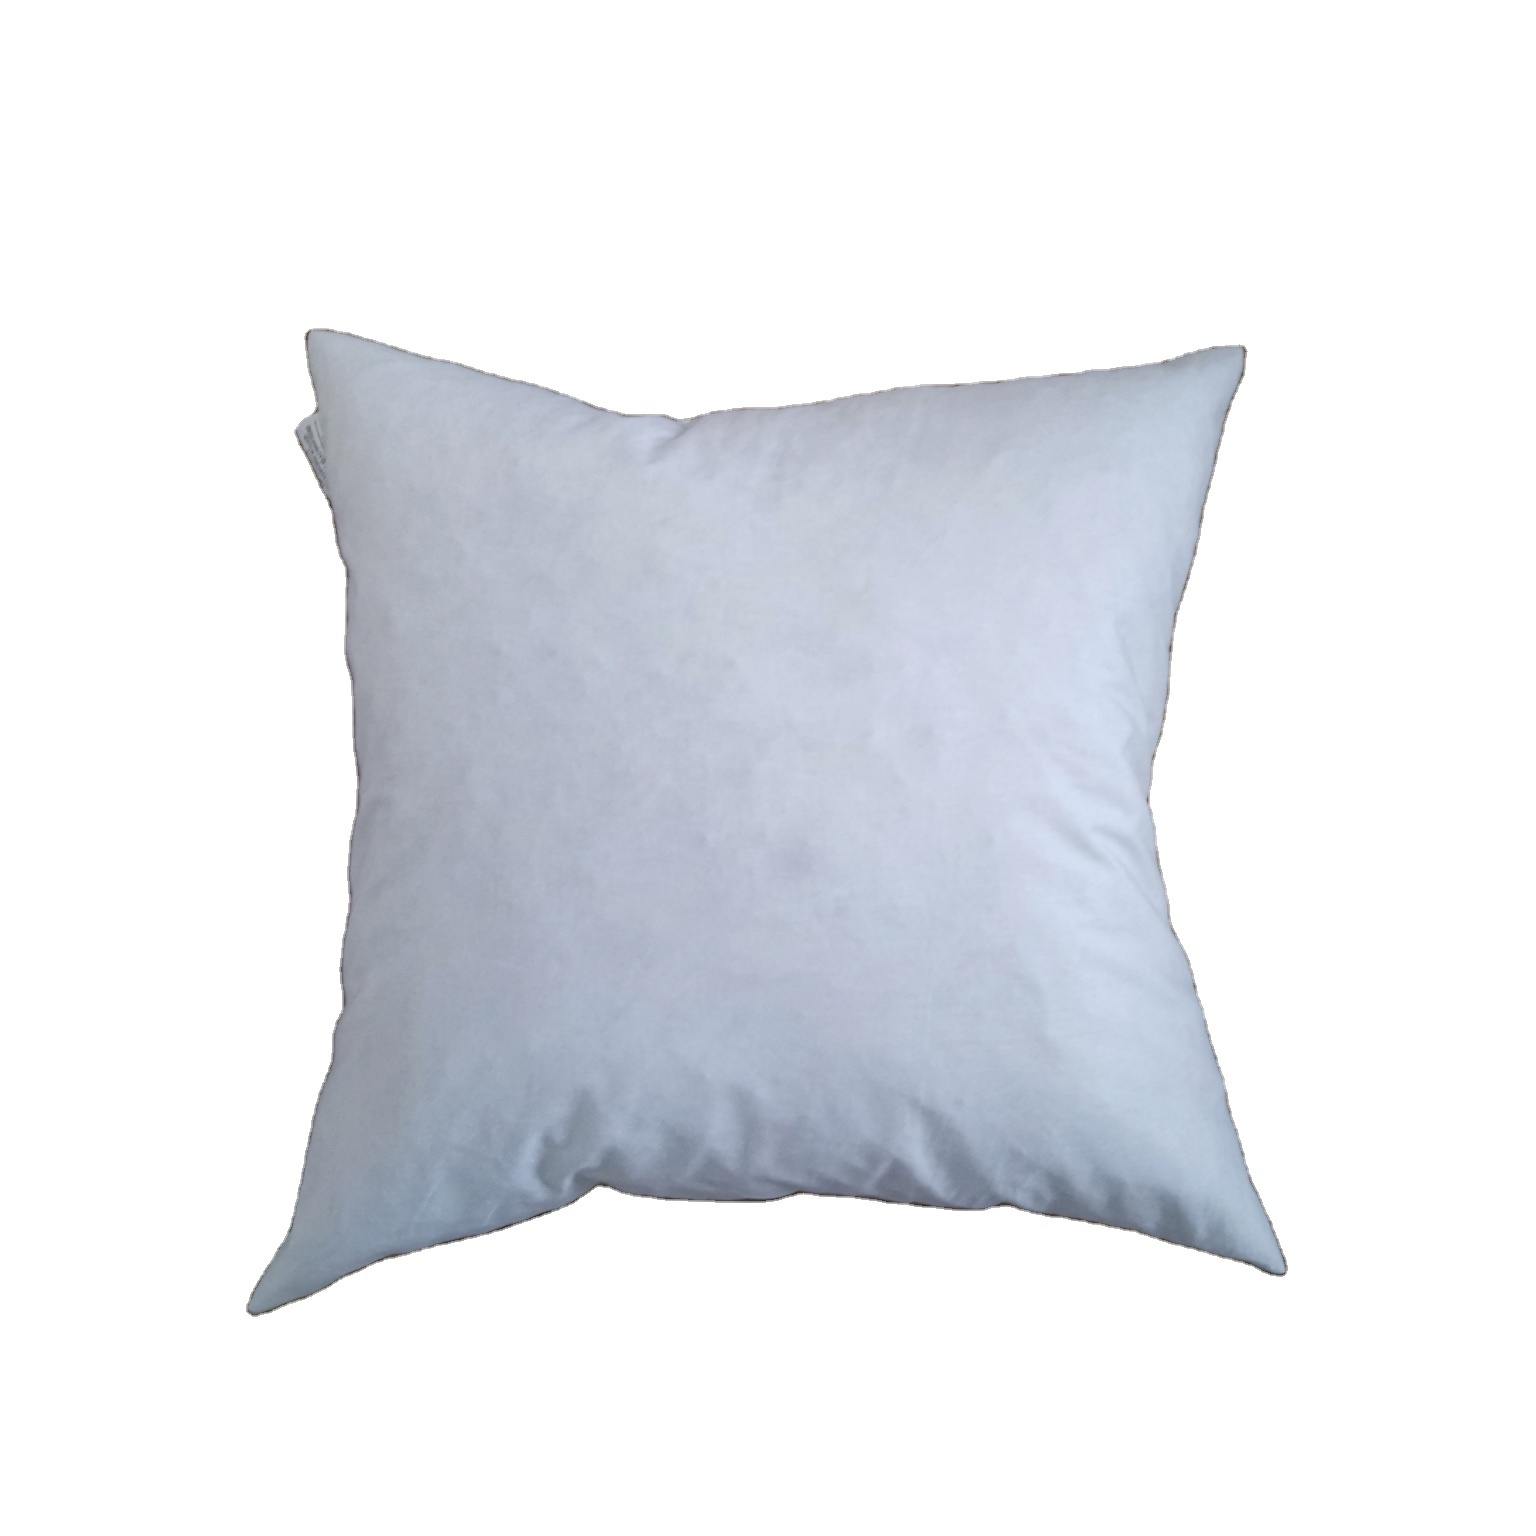 luxury high quality throw pillow insert square form sham stuffer down feather pillow 16 x16 cushion inserts buy wholesale indoor and outdoor white square throw 40x40 pillow insert hot sale factory cheaper